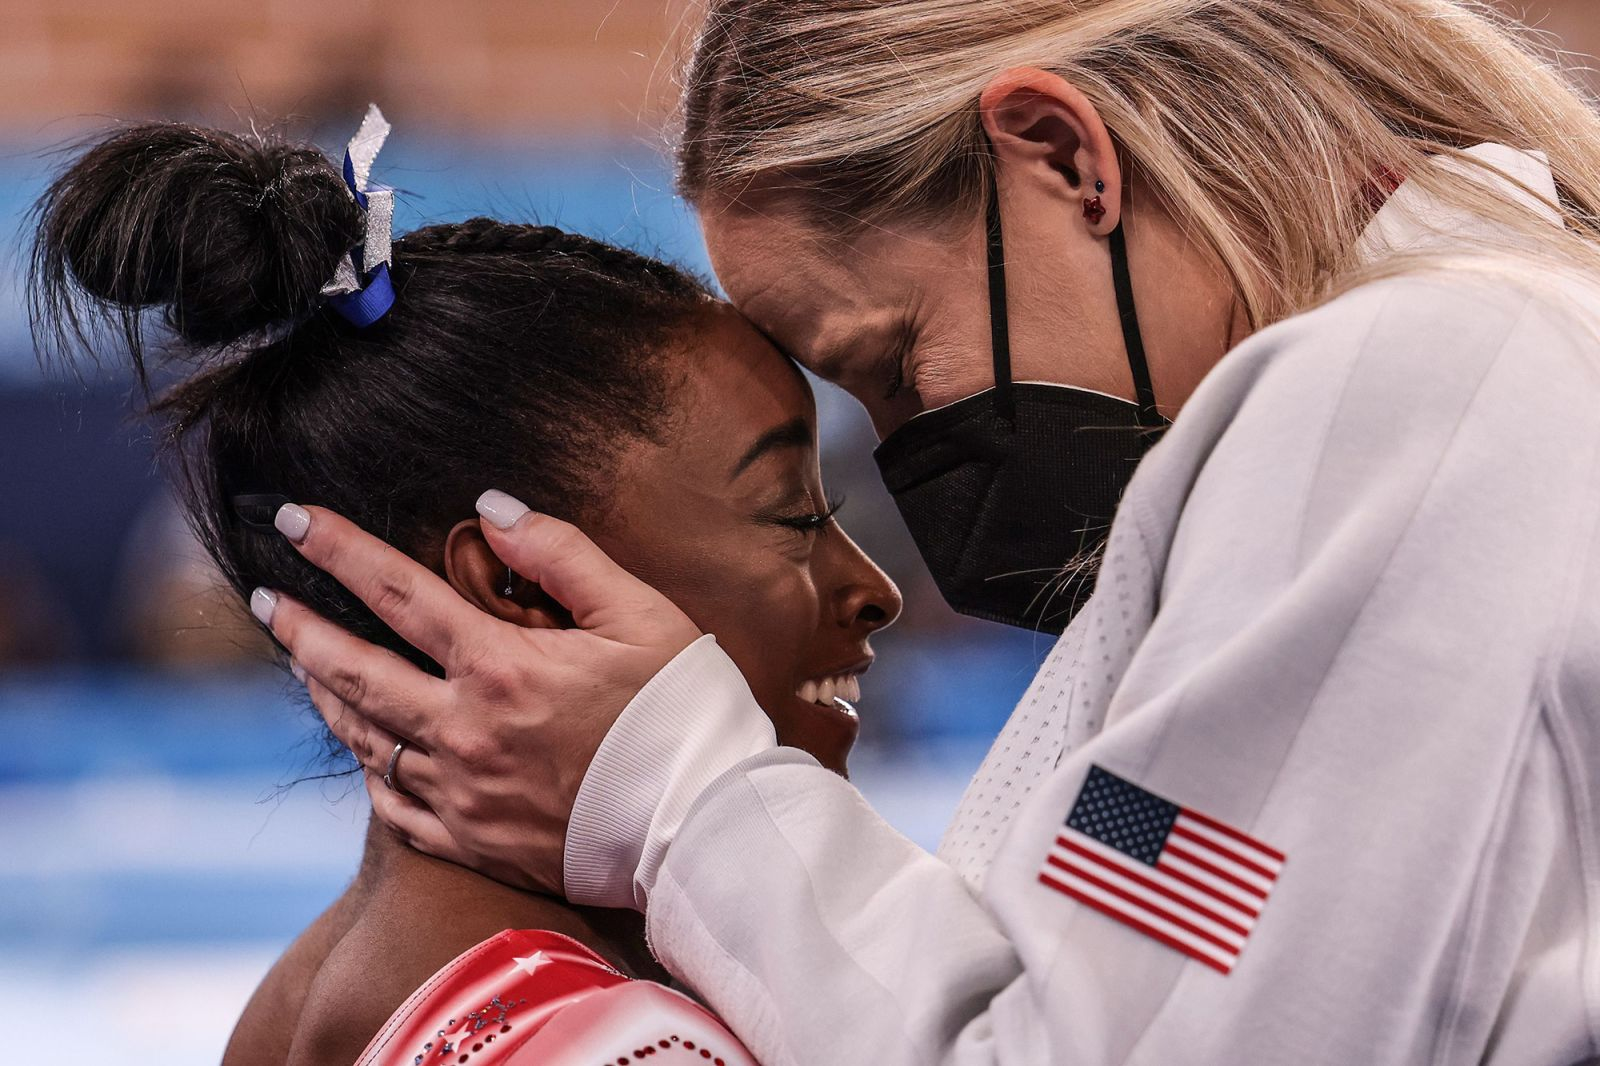 US gymnast Simone Biles is congratulated by coach Cecile Canqueteau-Landi as it became evident that Biles would earn a medal on August 3. Biles now has seven Olympic medals, tying her with Shannon Miller for the most by an American gymnast.